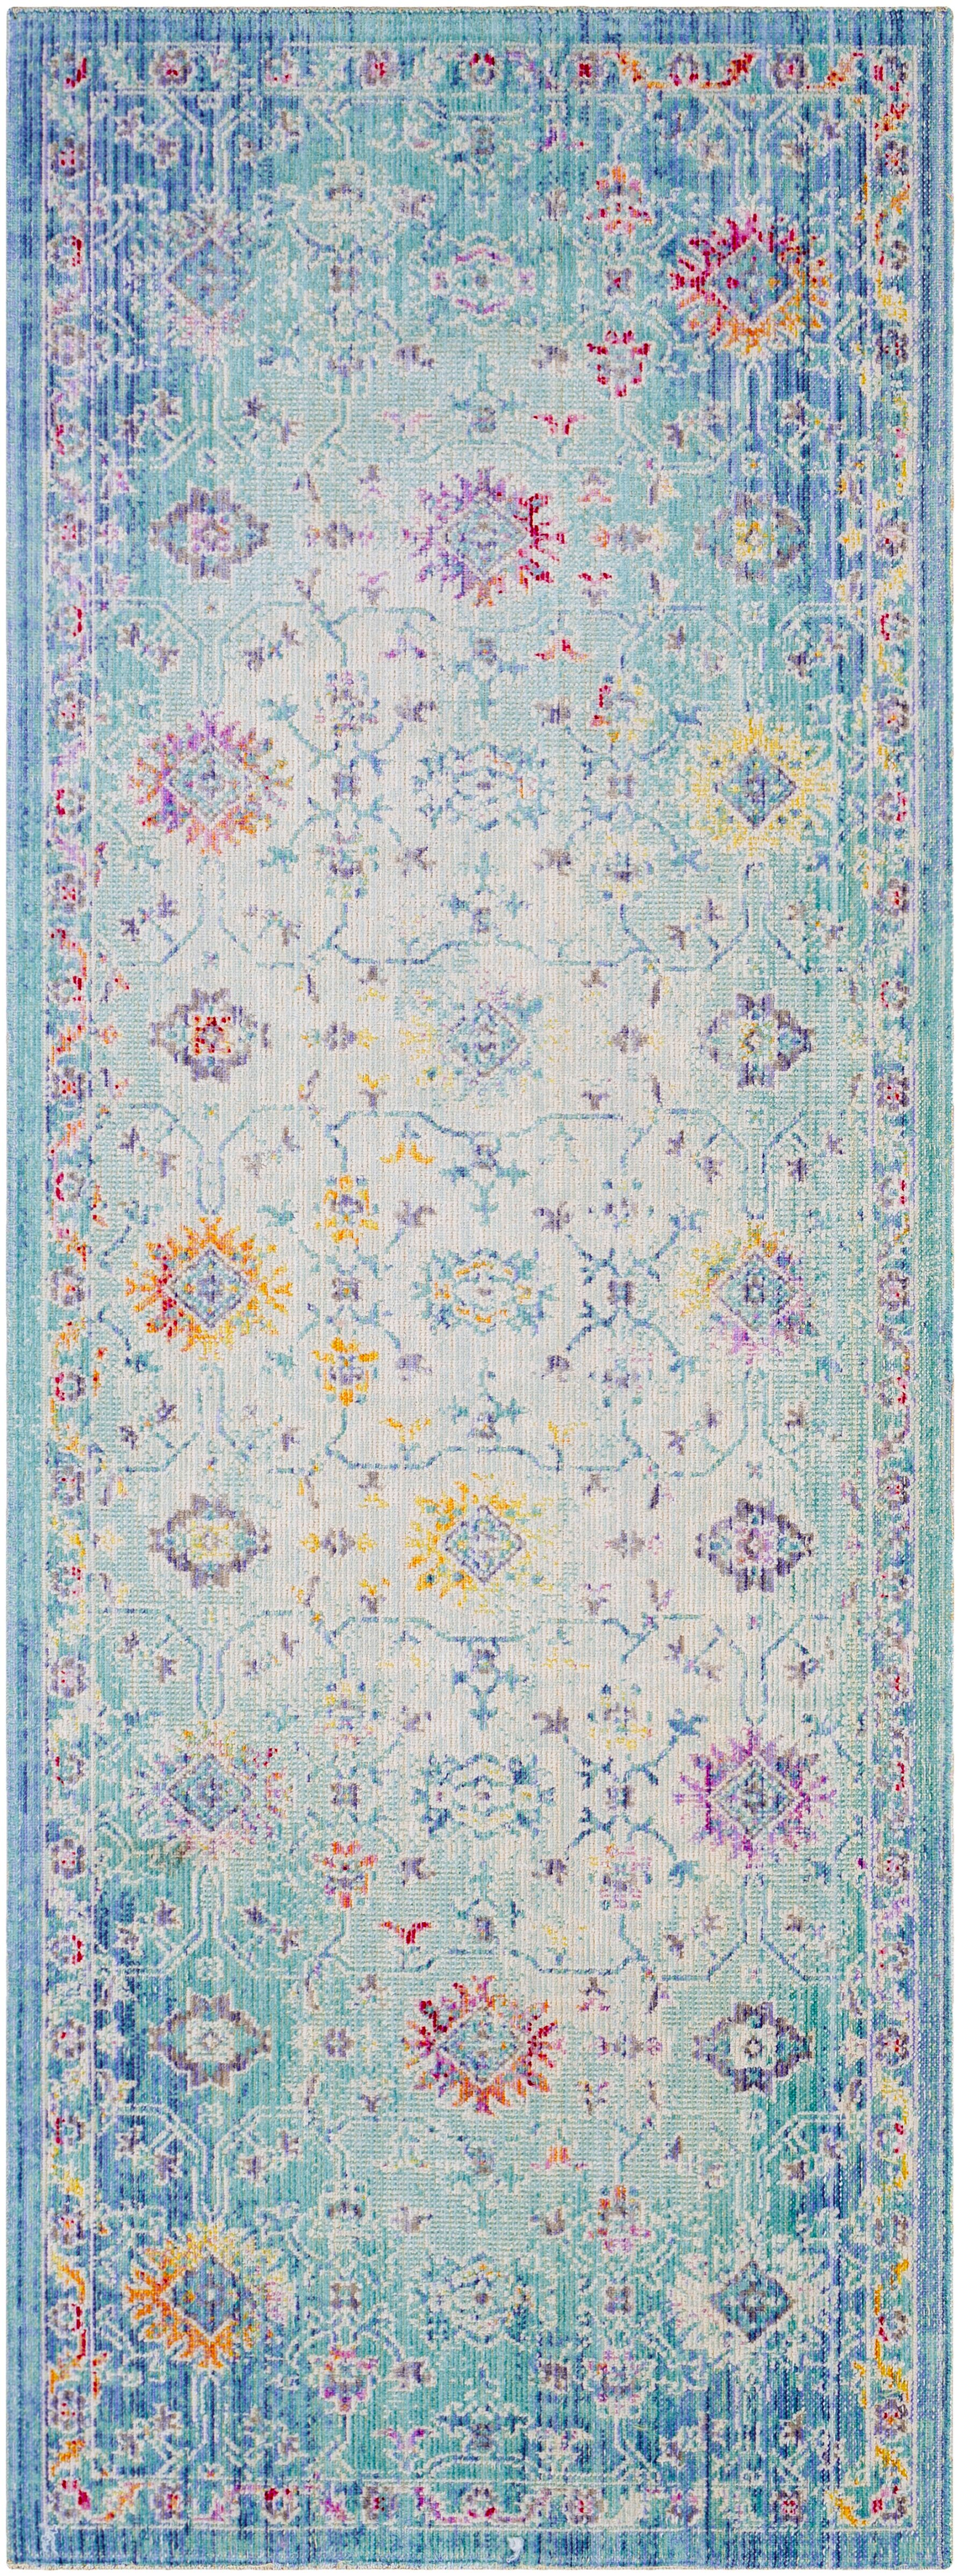 Lyngby-Taarbæk Classic Floral and Plants Aqua Area Rug Rug Size: Runner 3' x 7'1